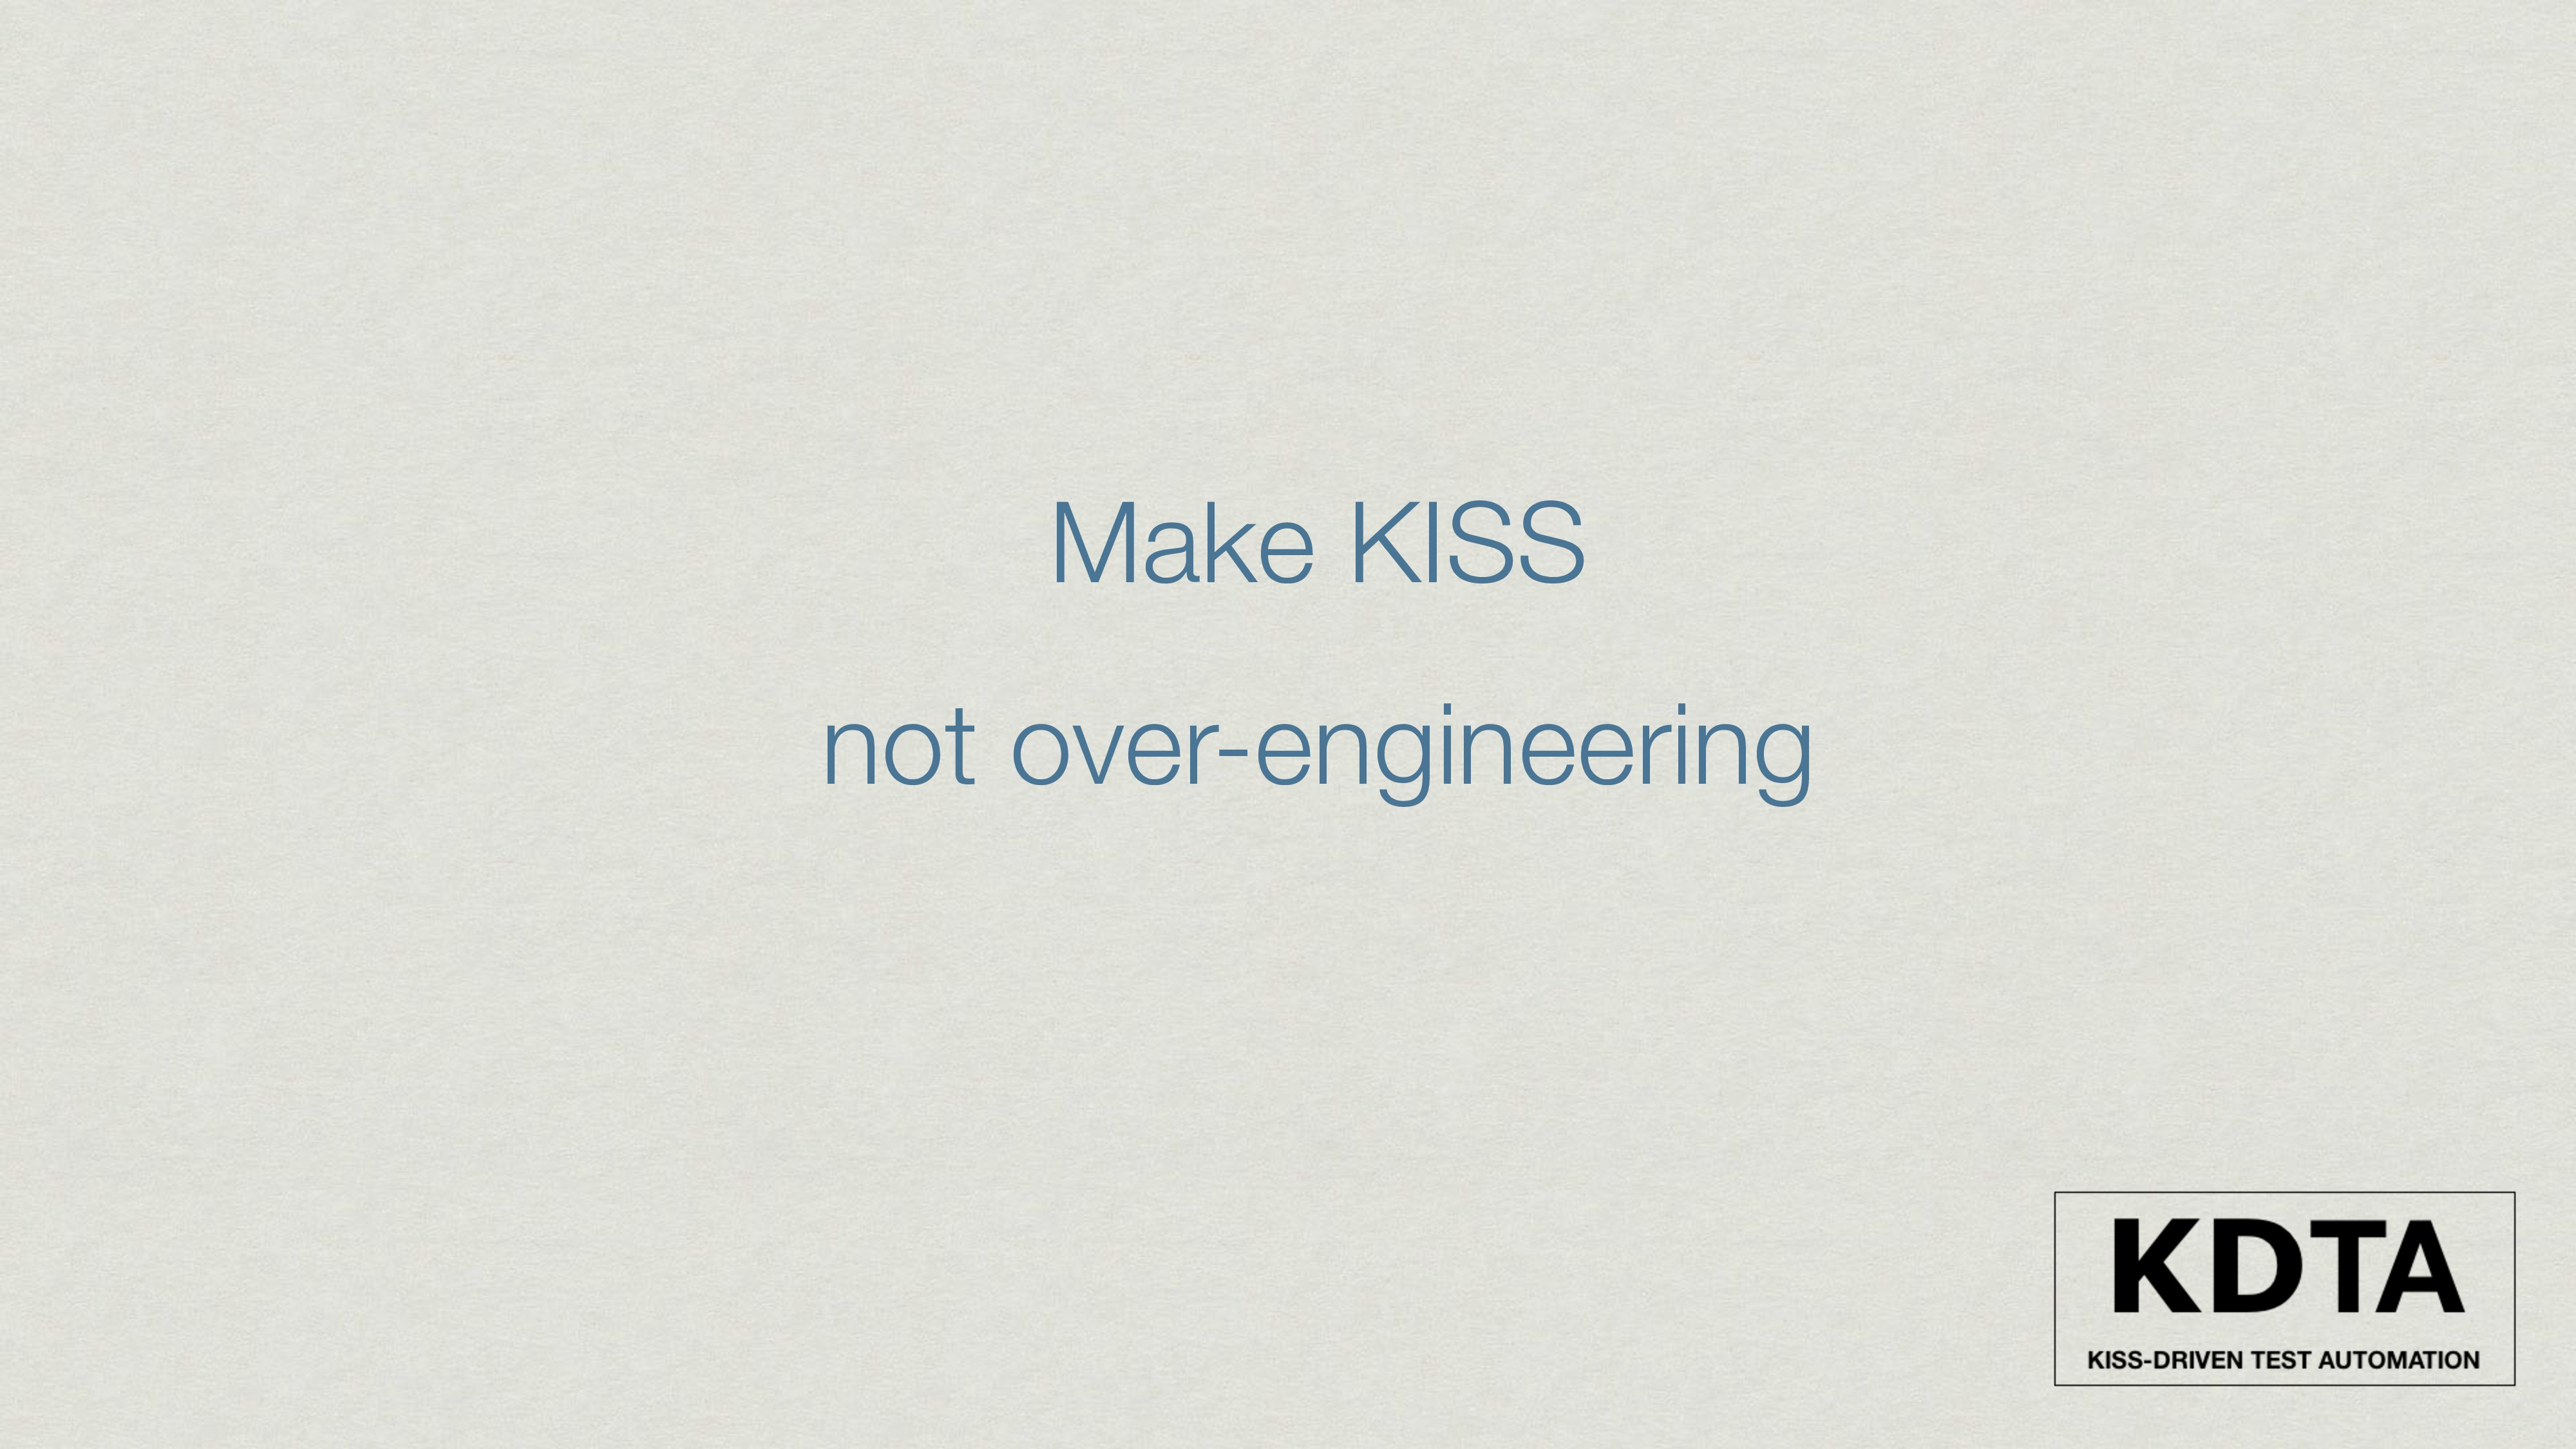 Make KISS not over-engineering